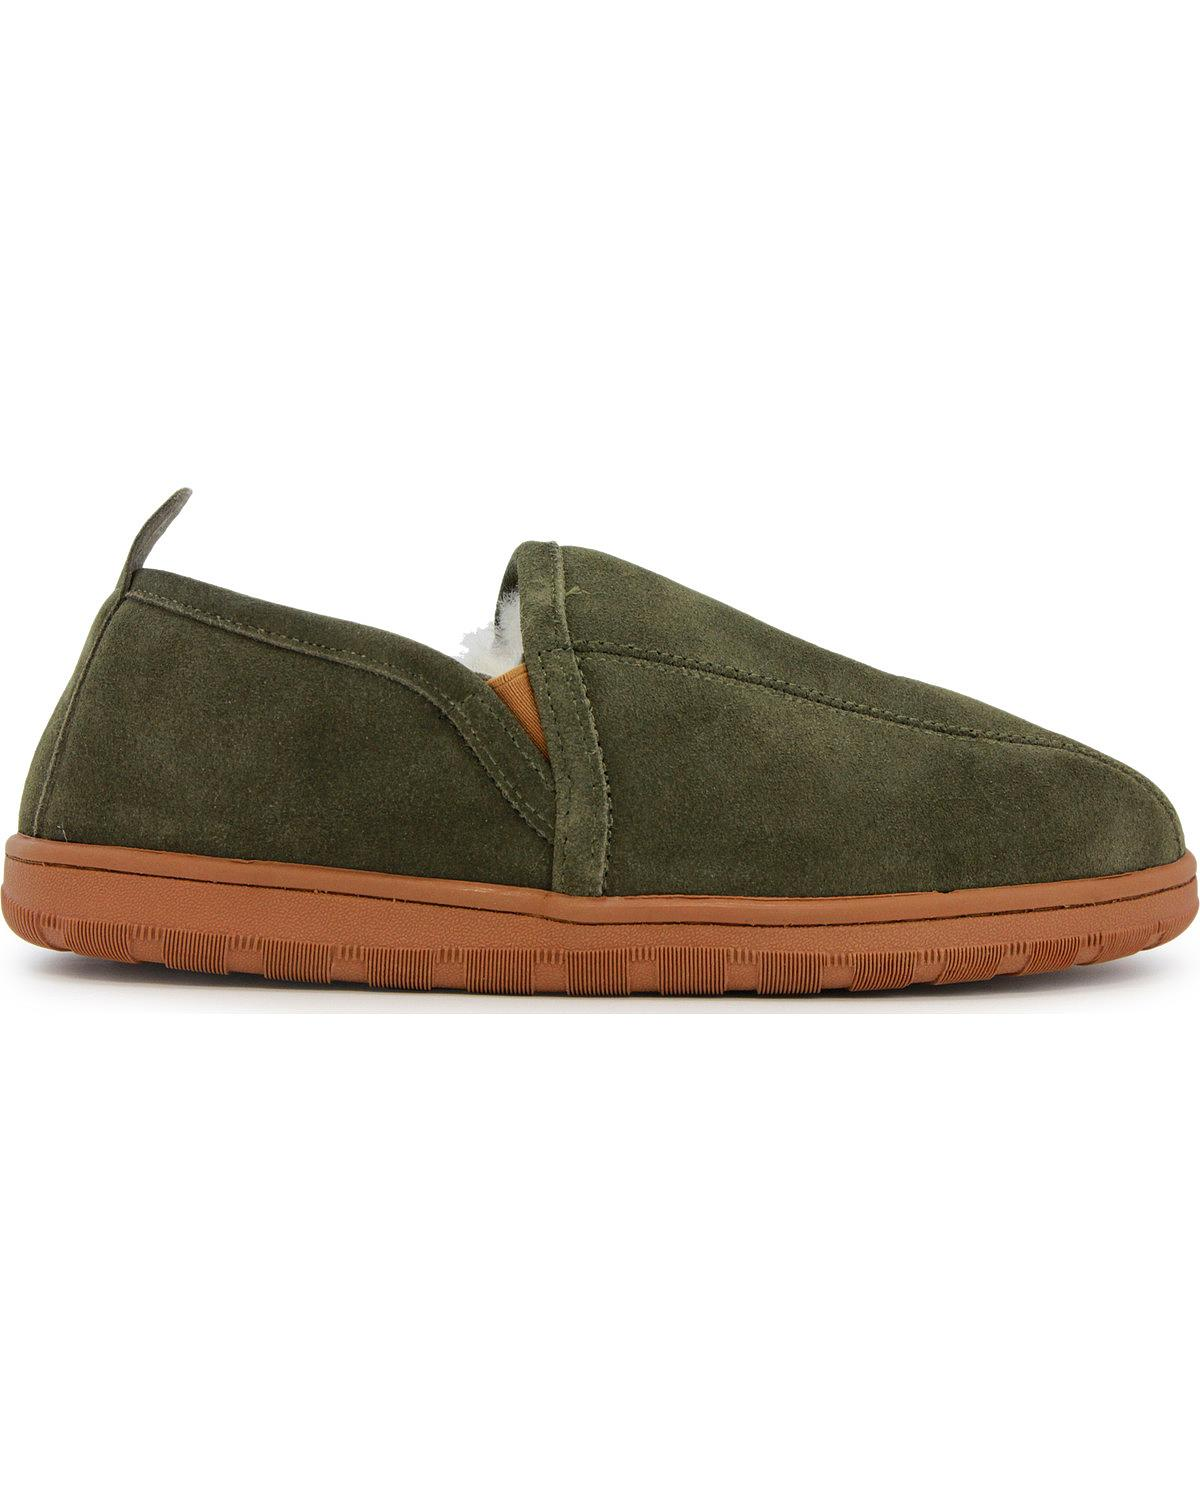 Lamo Footwear Men's Romeo Slippers M0104-92 by Lamo Footwear